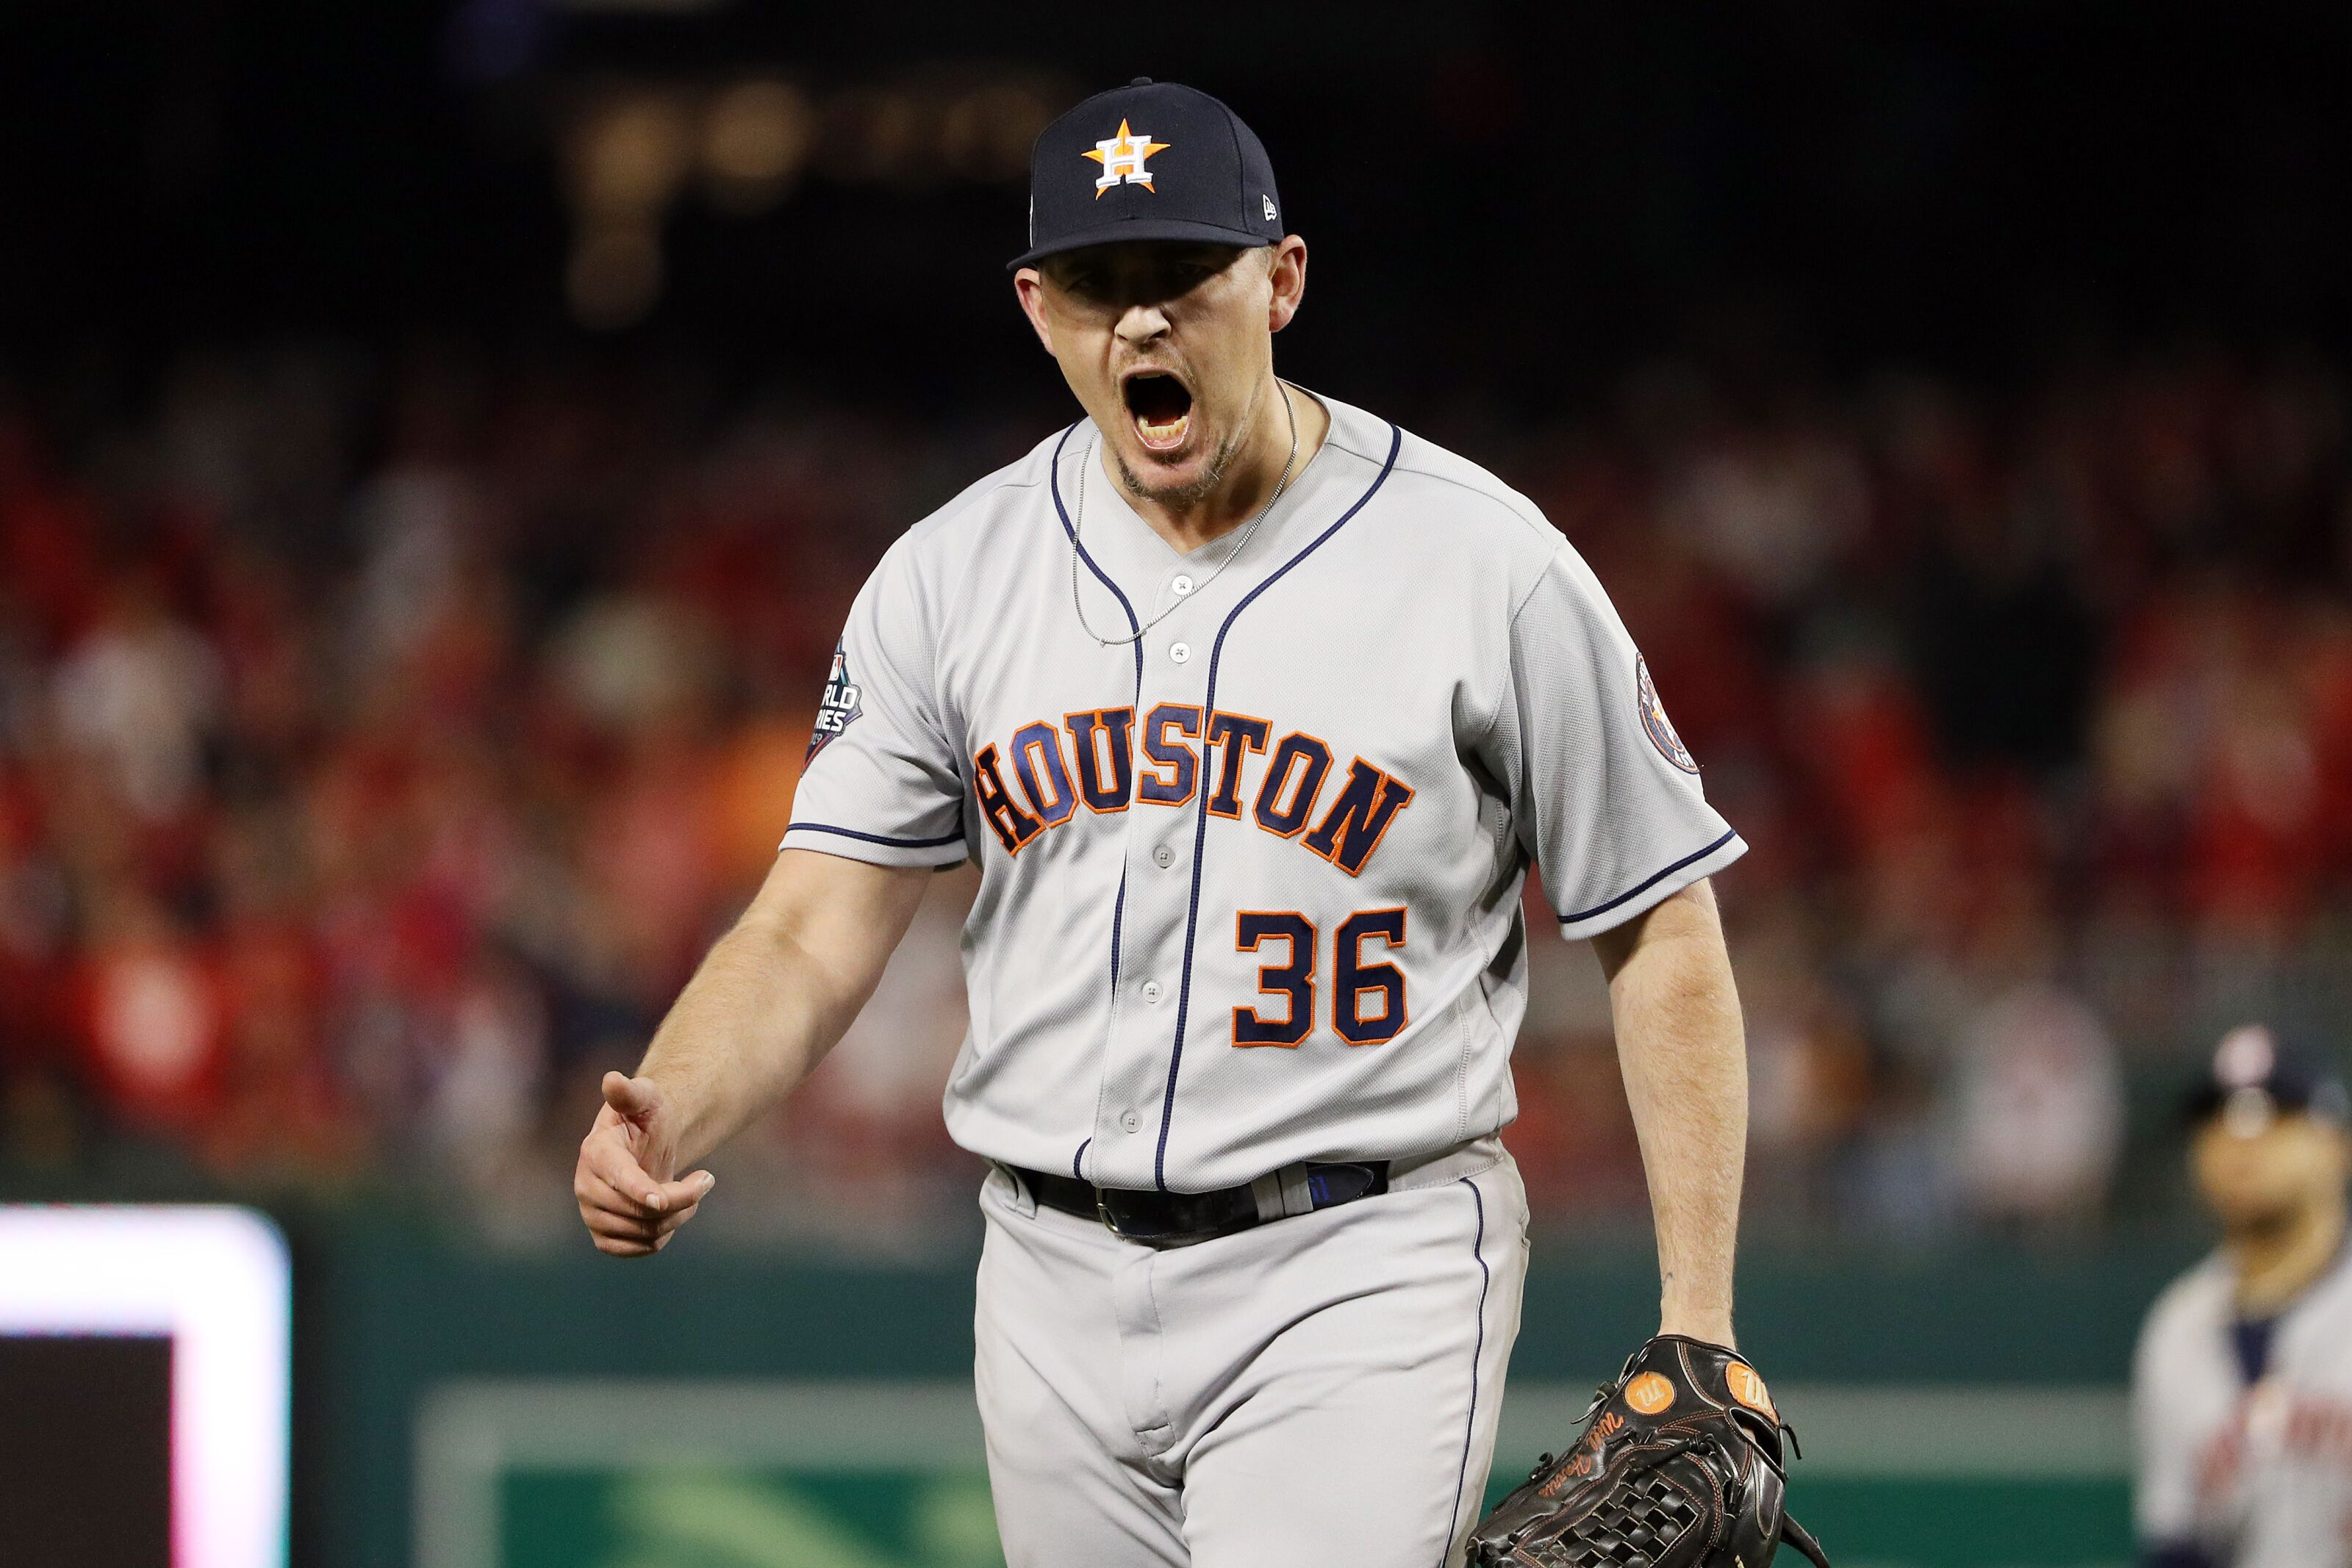 Houston Astros: Will Harris must be re-signed to shore up the bullpen